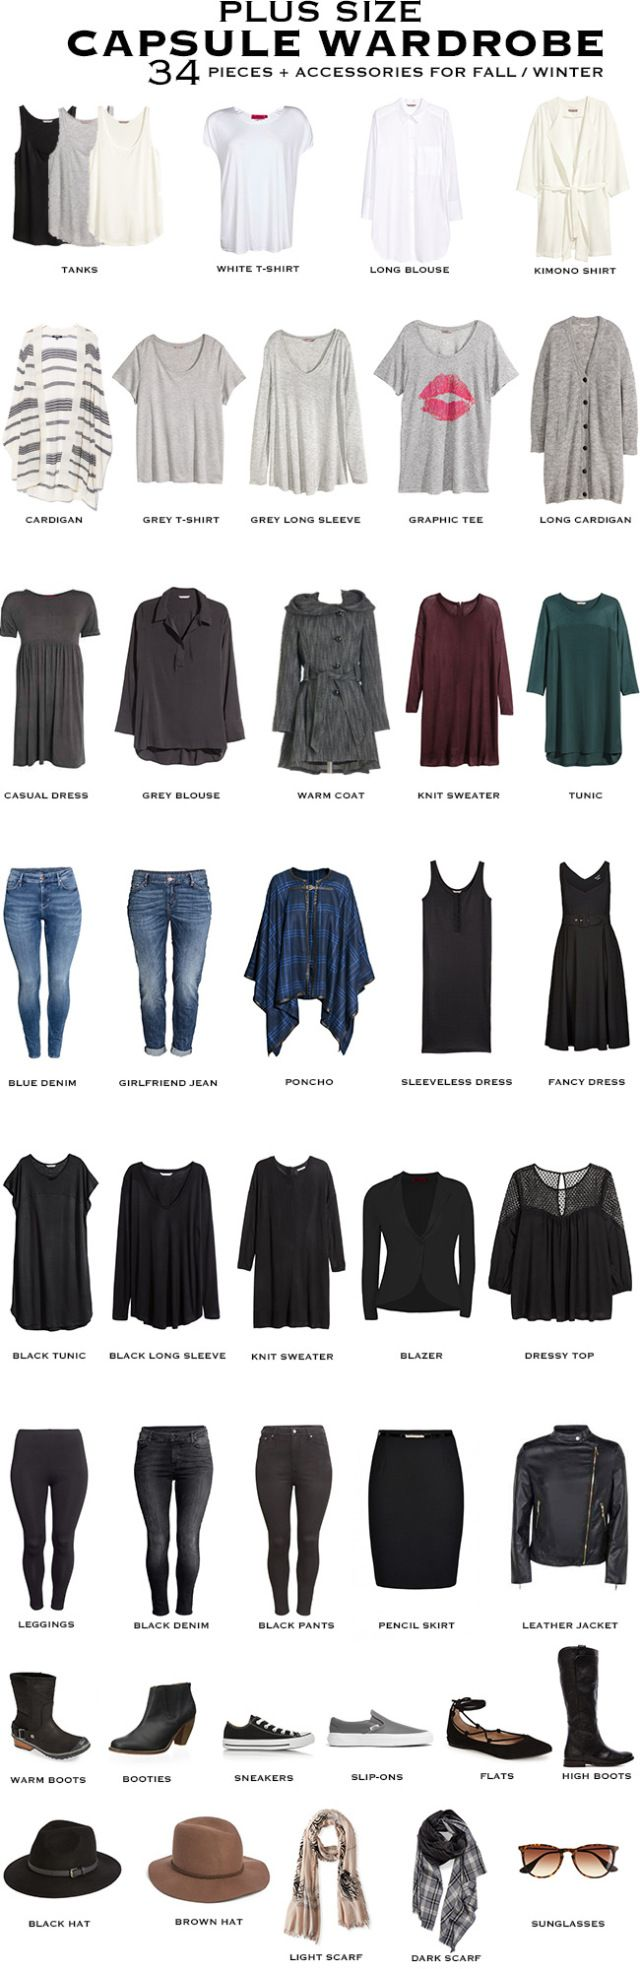 0dc3b3c4320 Plus Size Capsule Wardrobe for fall winter. 34 pieces + accessories will  transition you through to summer.  capsule  capsulewardrobe  plussizefashion